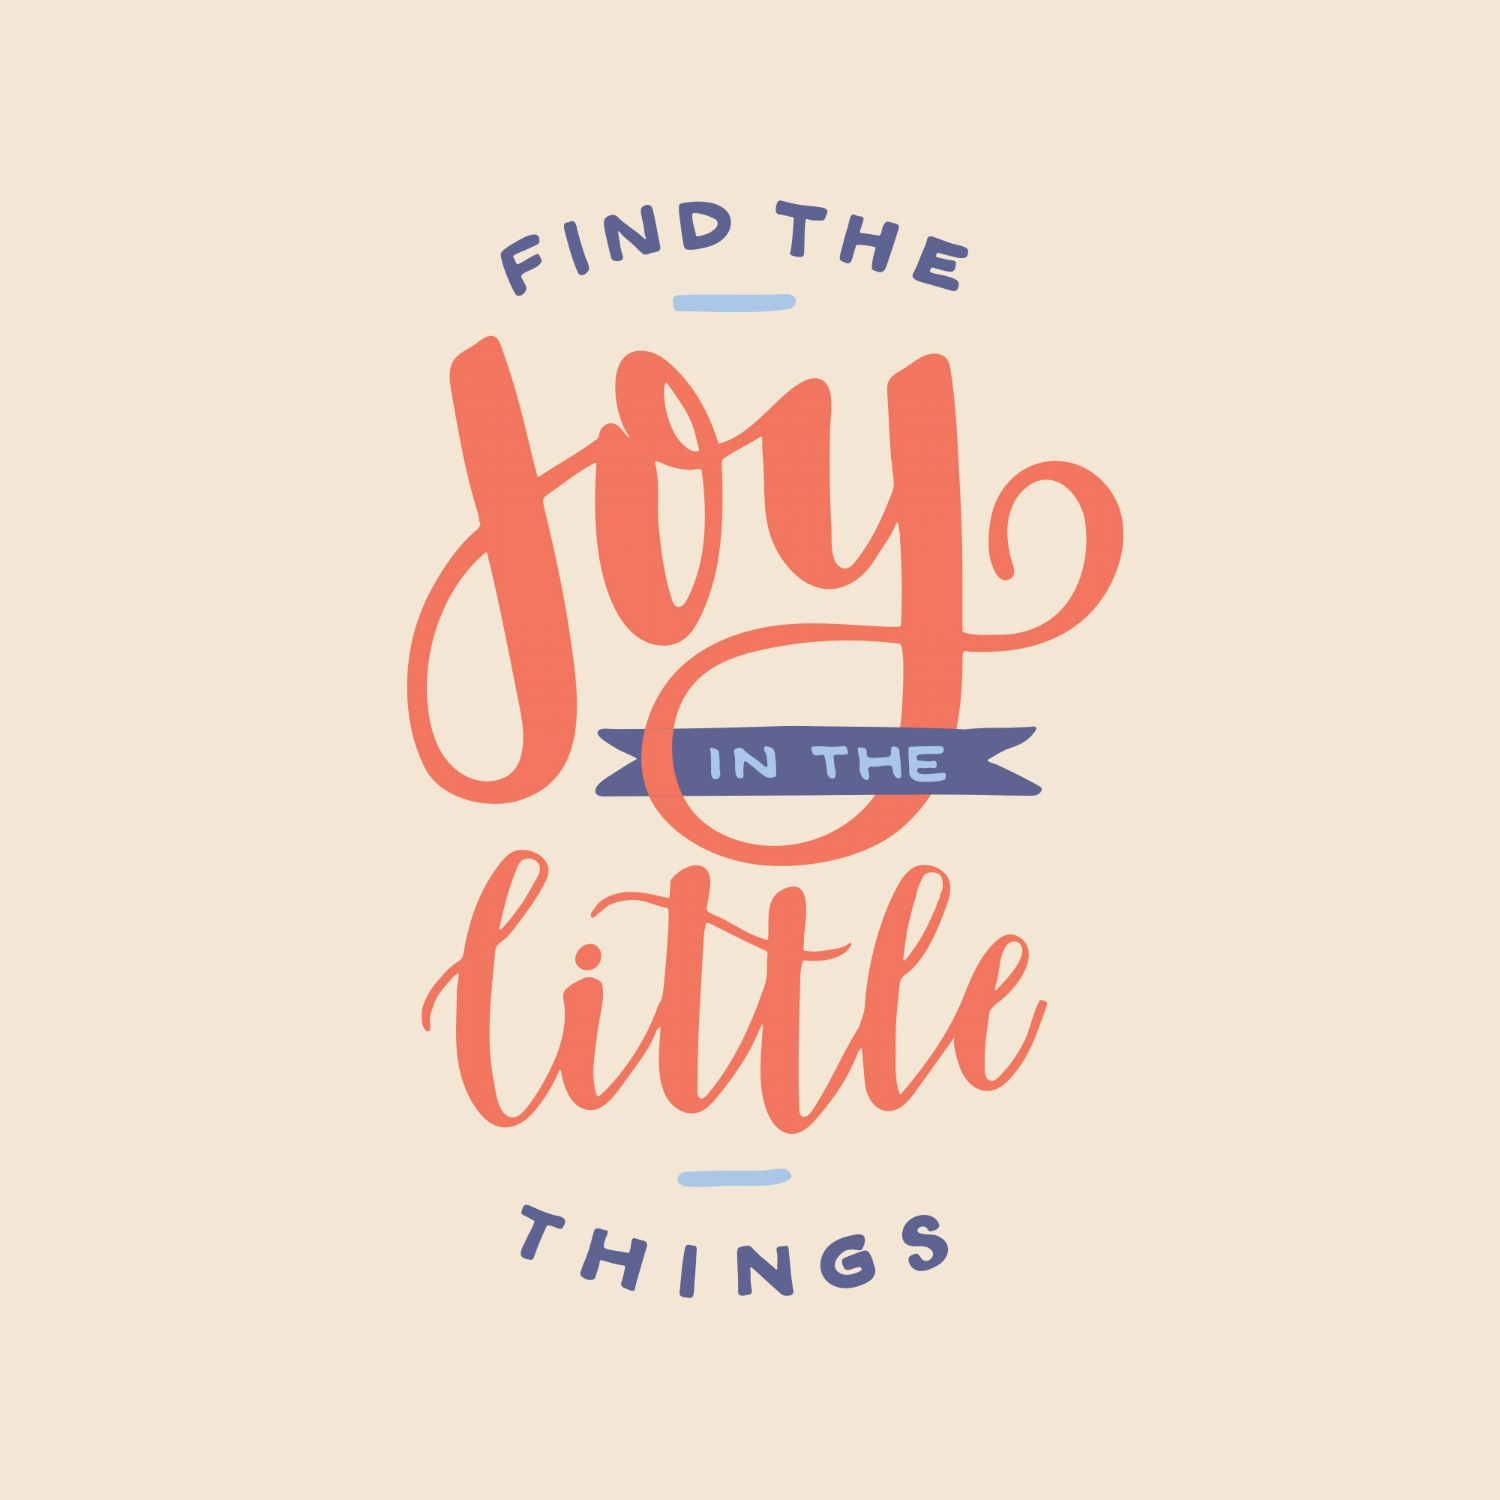 """Find the joy in the little things"" submitted by @mindfulmediakc"